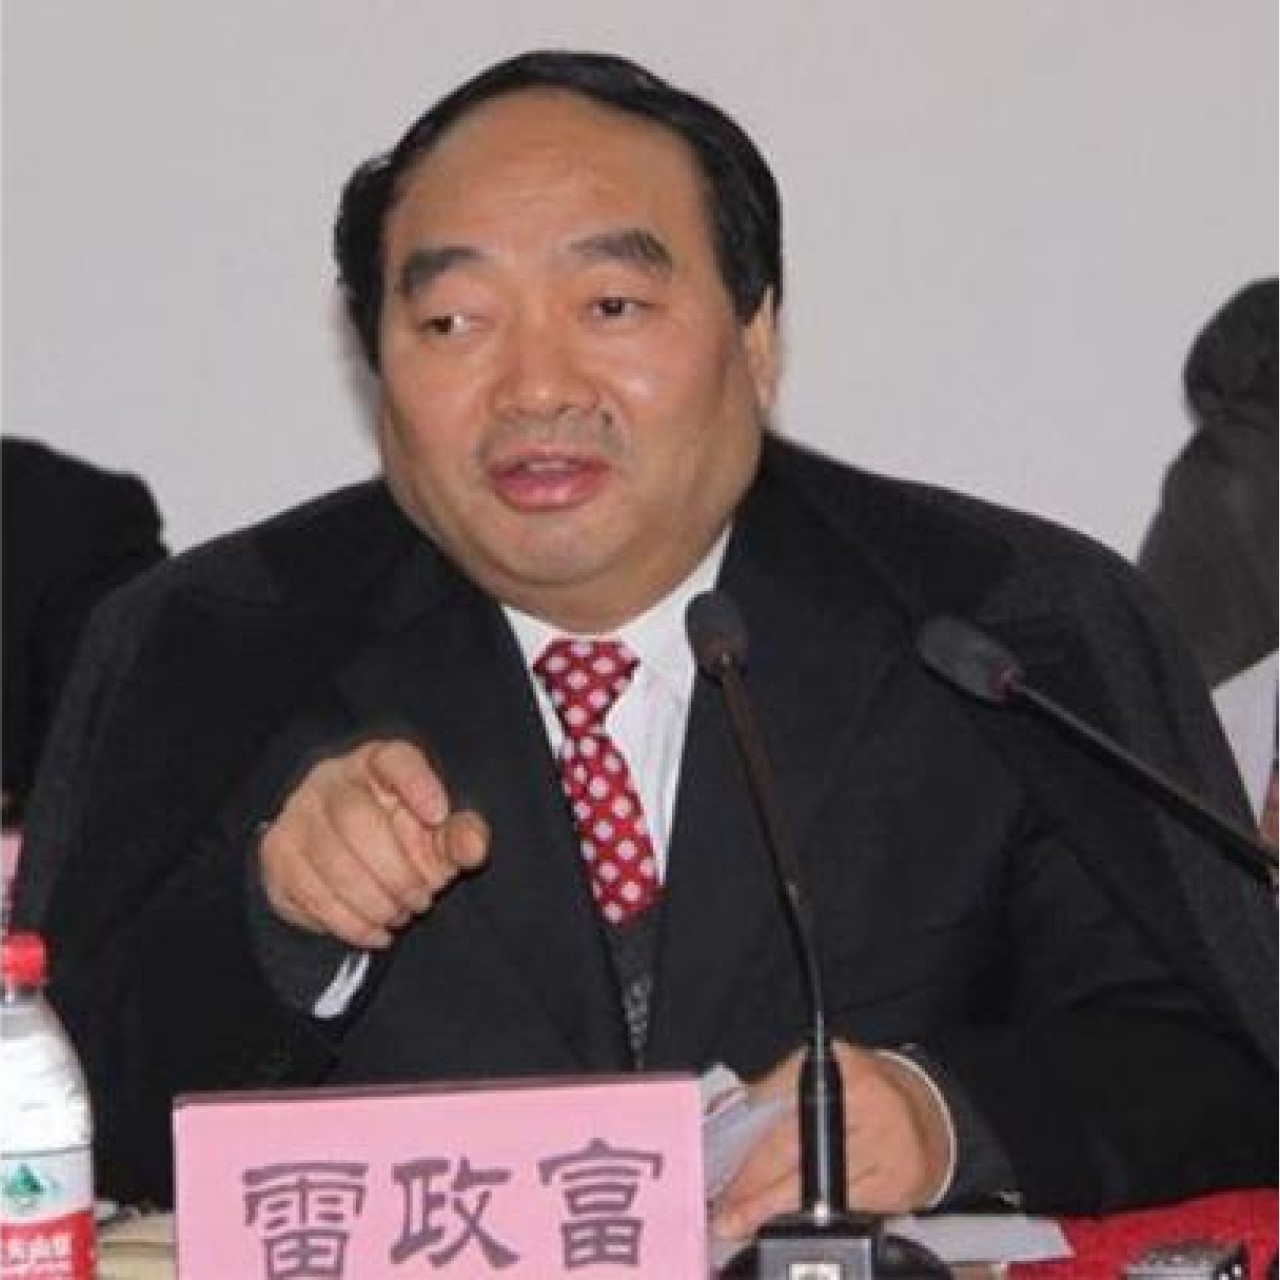 Chongqing official Wu Hong latest to become embroiled in sex scandal